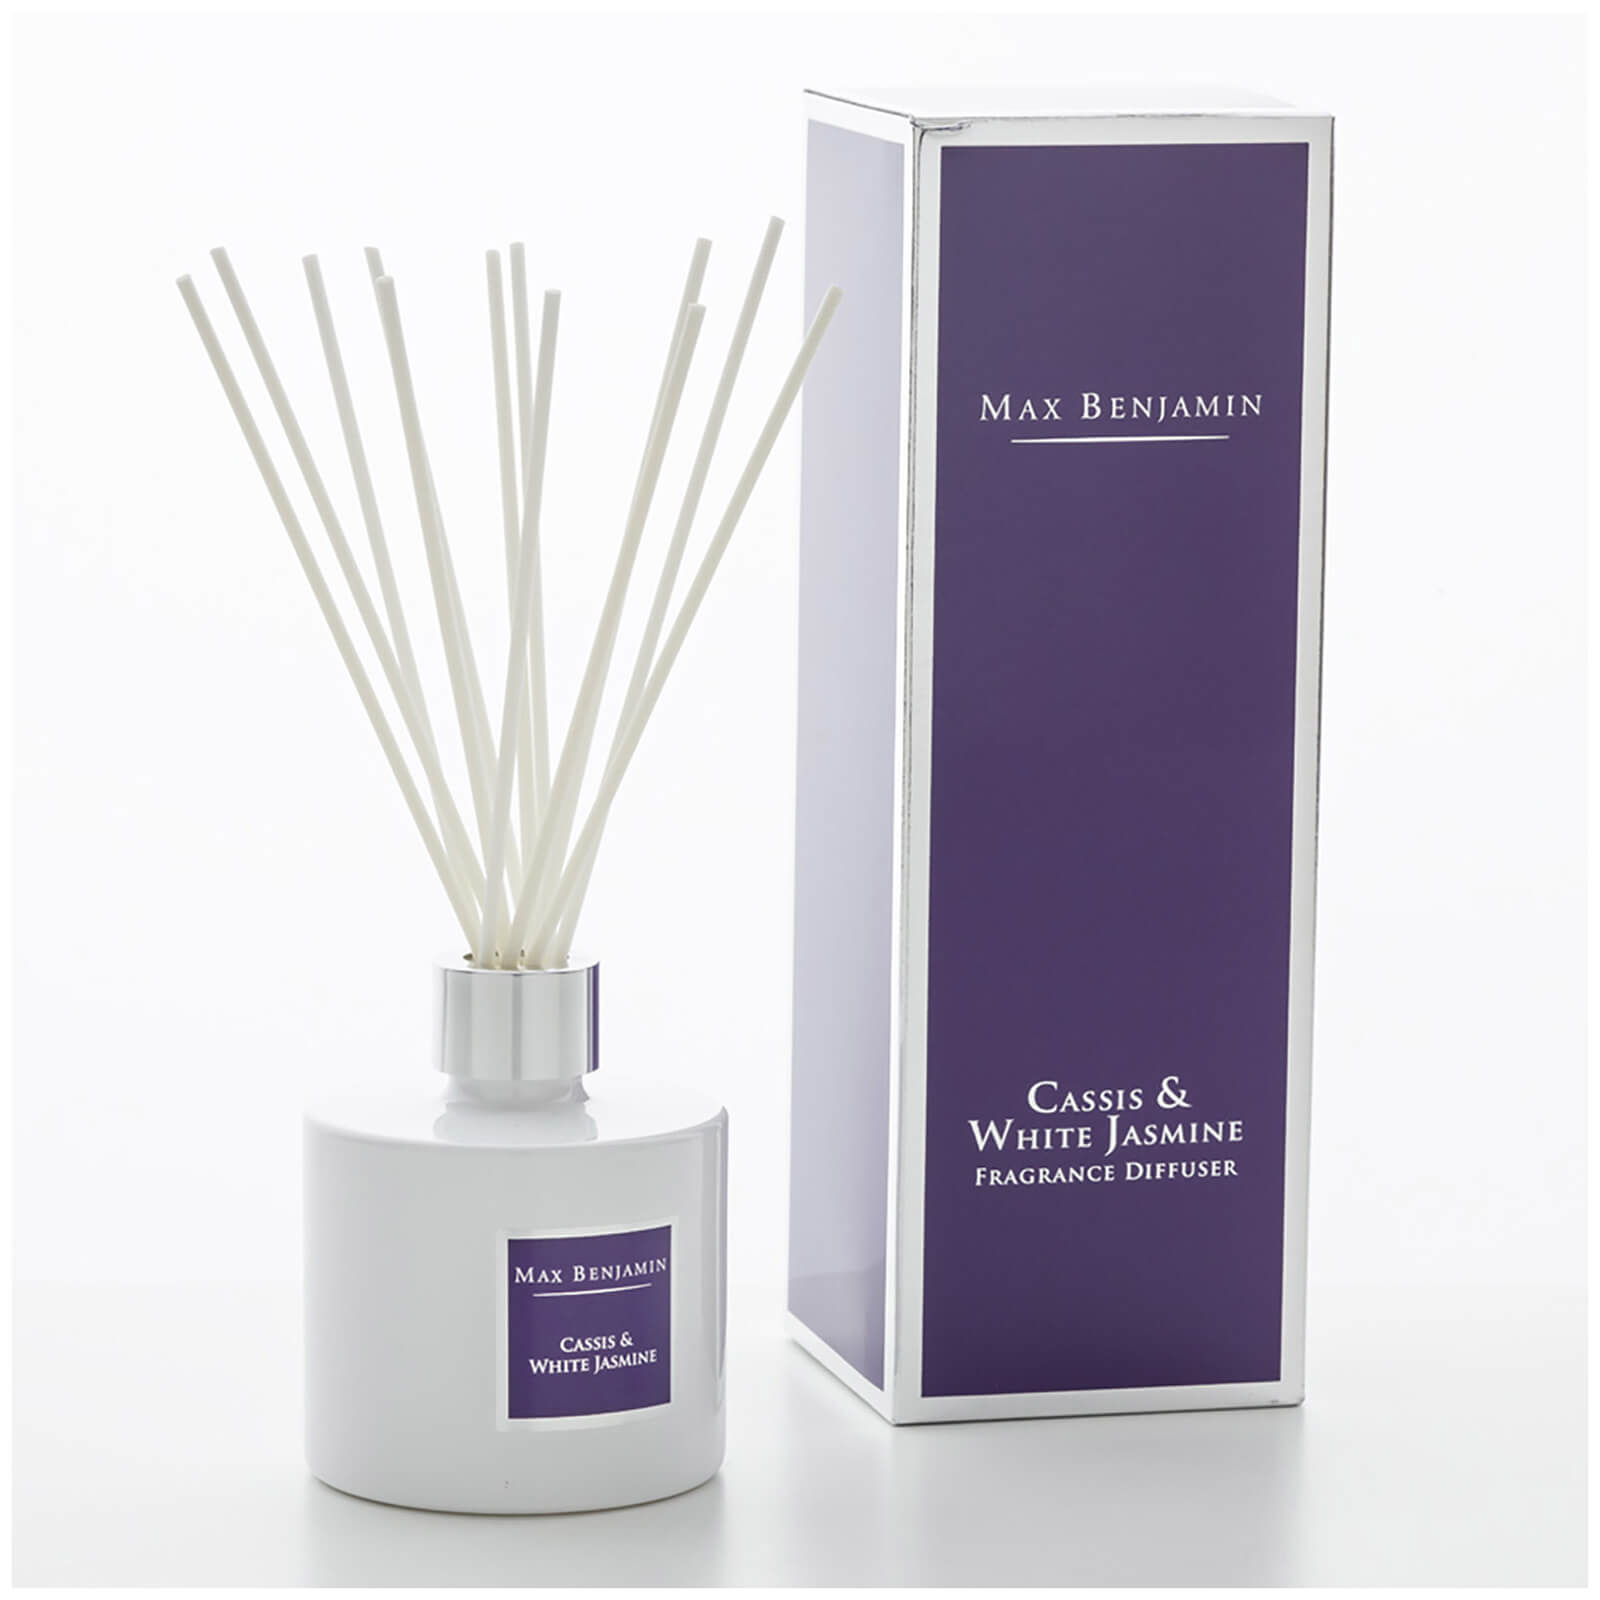 Max Benjamin Cassis and White Jasmine Fragrance Diffuser